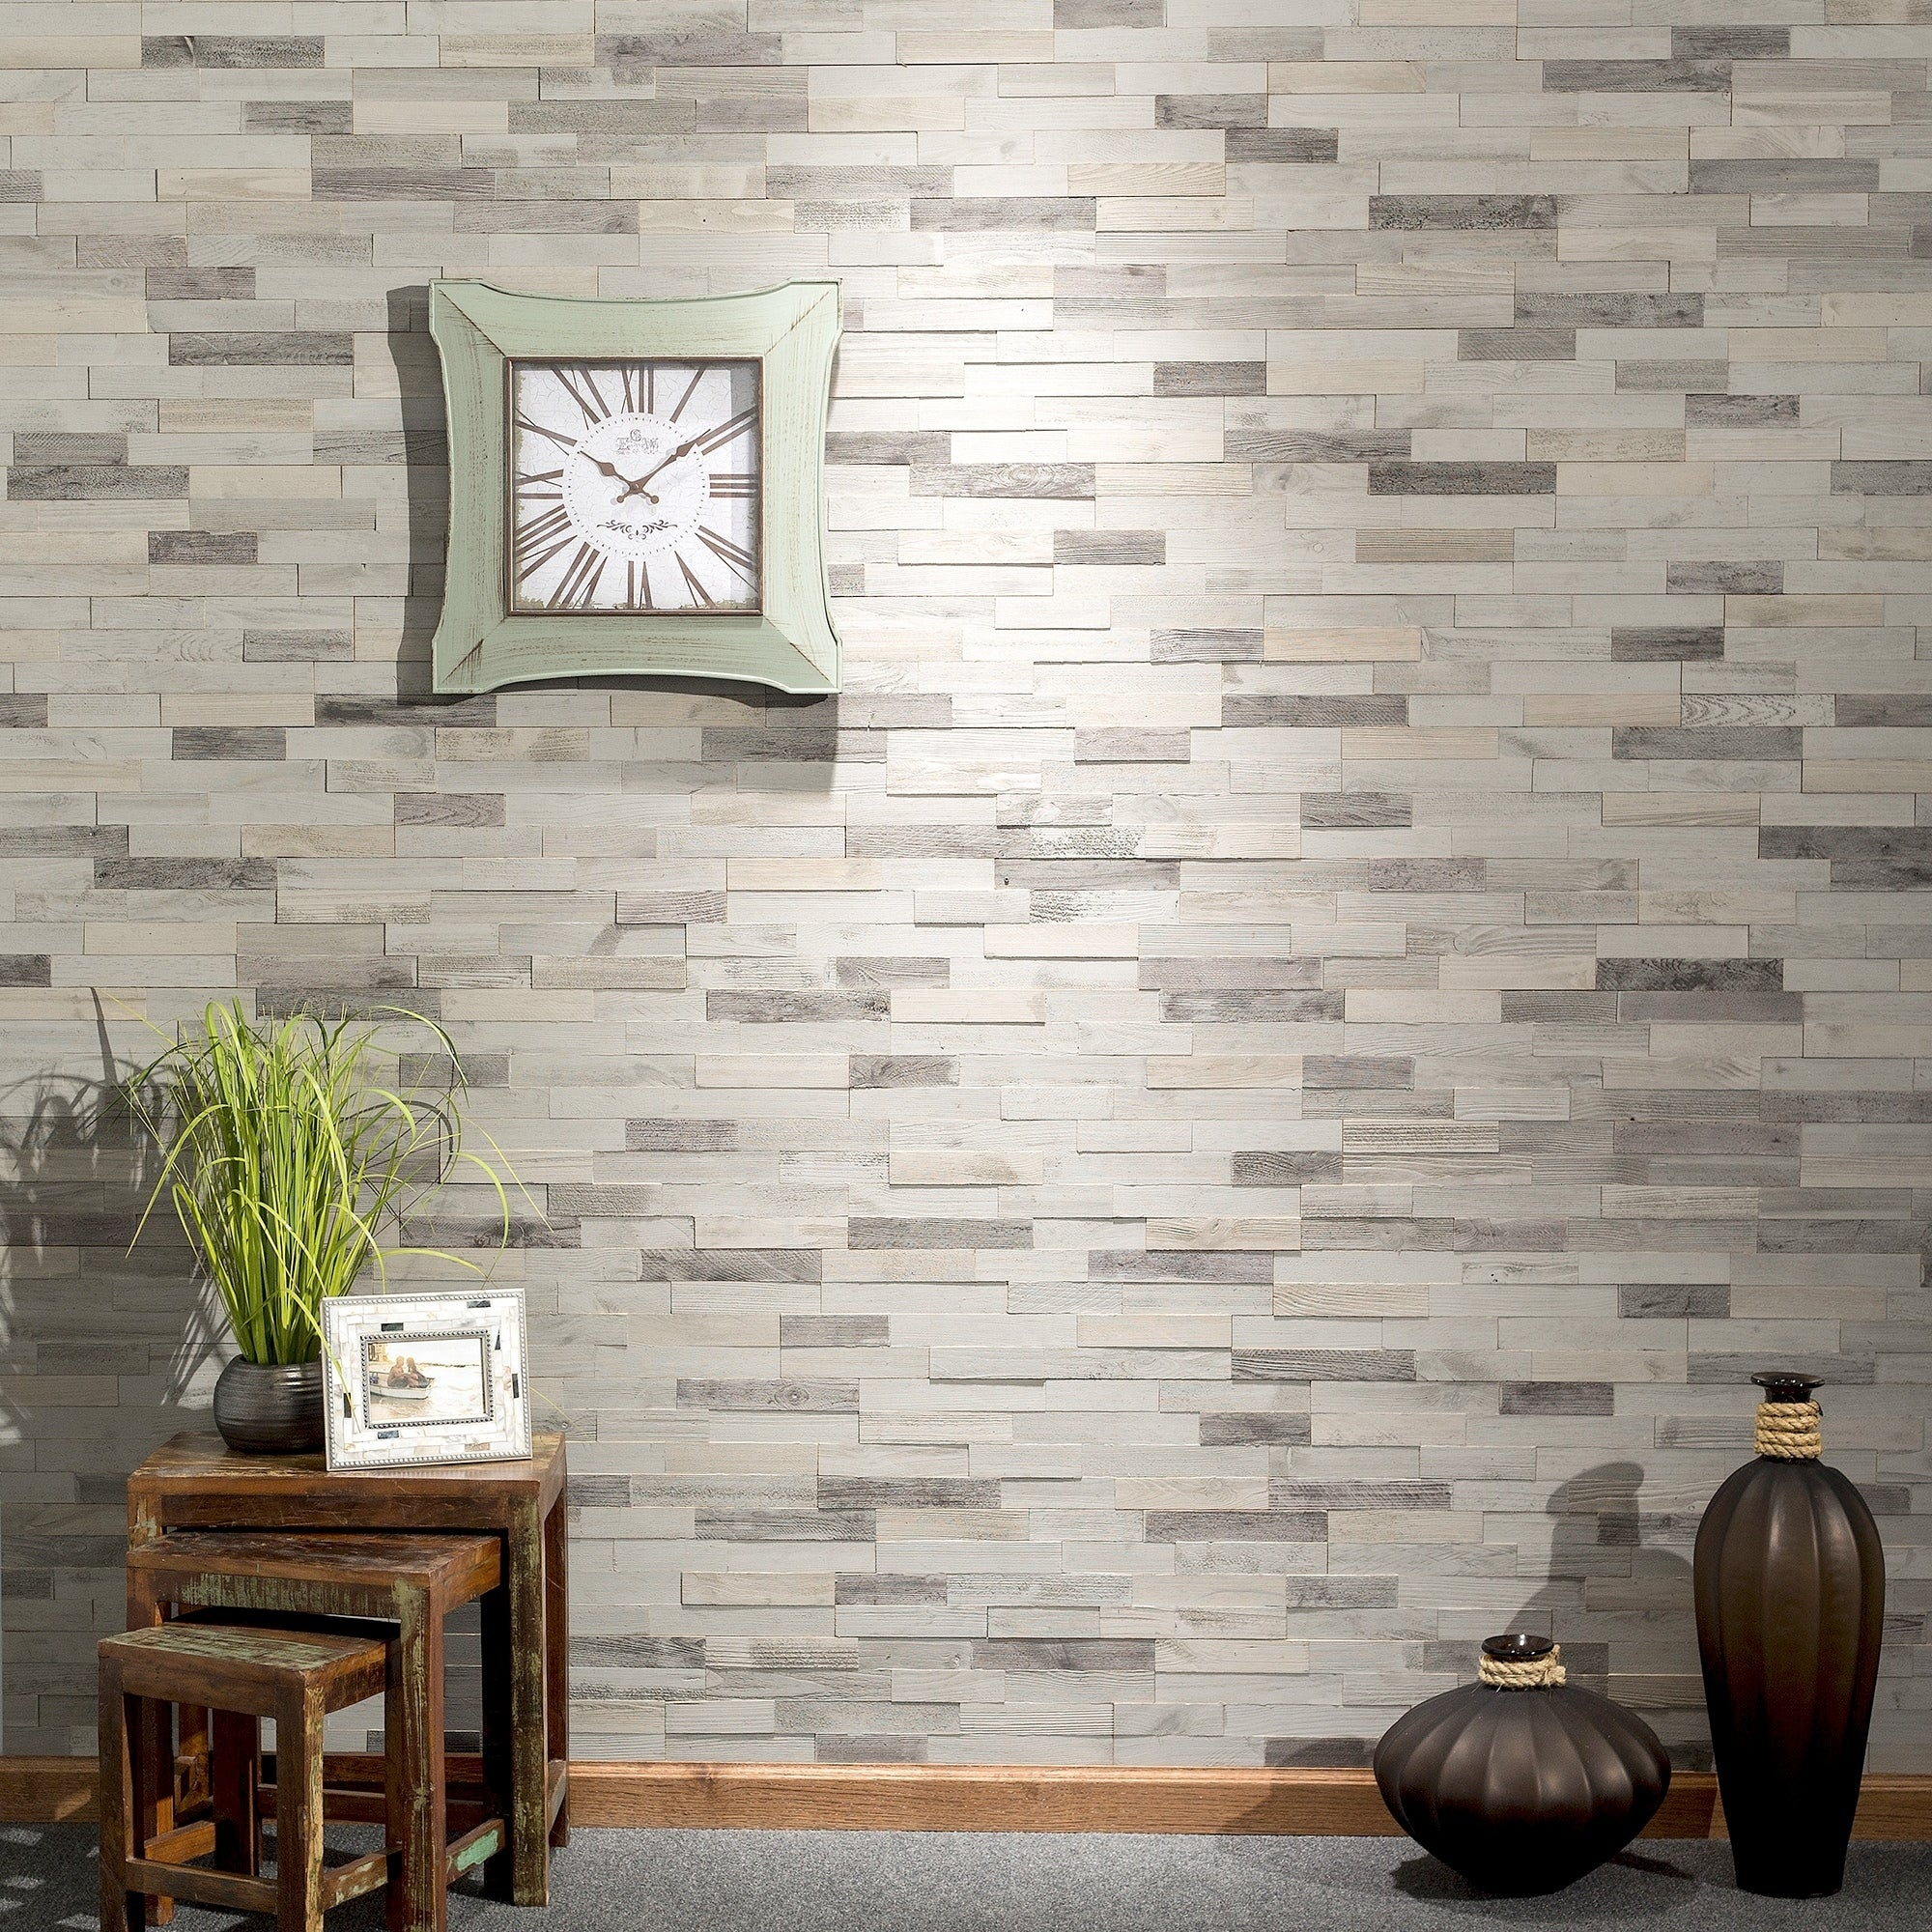 Aspect L N Stick Wood 6 5 X 24 Tile Pack Weathered Barn Rox Sq Ft Free Shipping Today 21869275